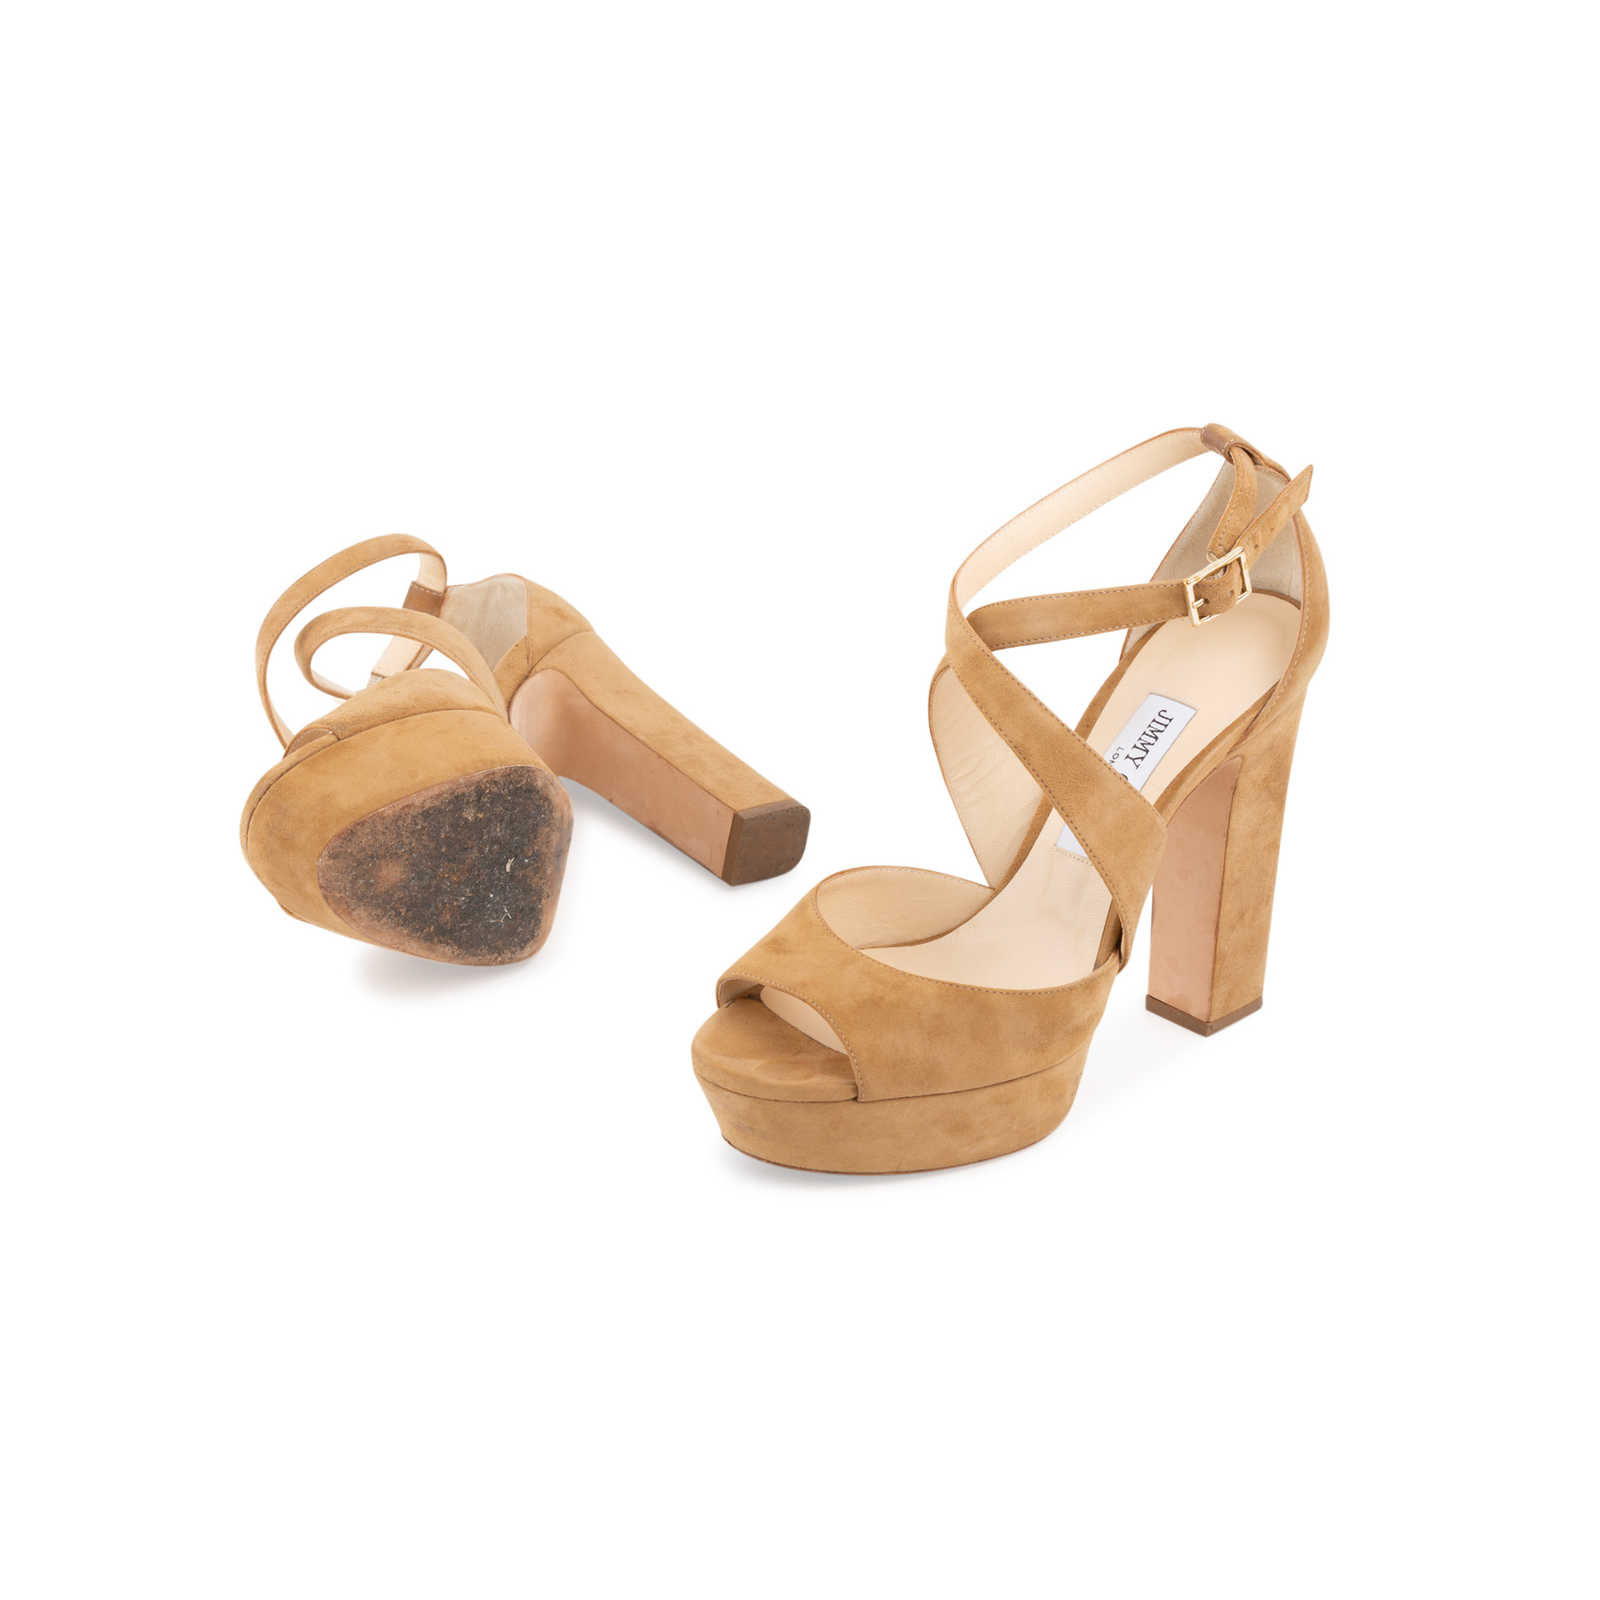 3103d354ca9f5 ... Authentic Second Hand Jimmy Choo April Suede Crisscross Sandals  (PSS-097-00199) ...